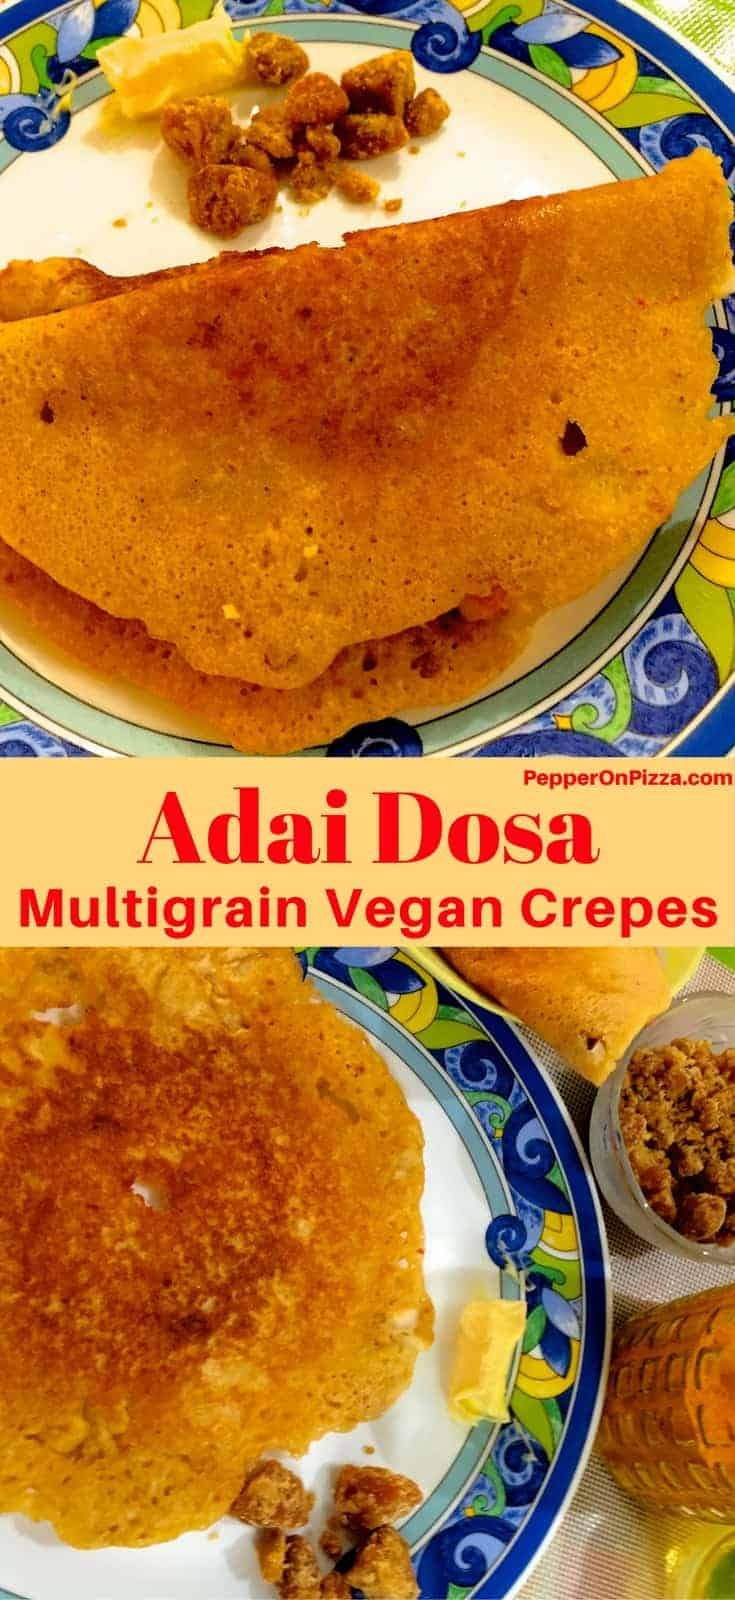 Multigrain Adai Dosa - Hearty, tasty crepes from a coarsely ground batter of rice and mixed lentils. Nutritious, filling and delicious